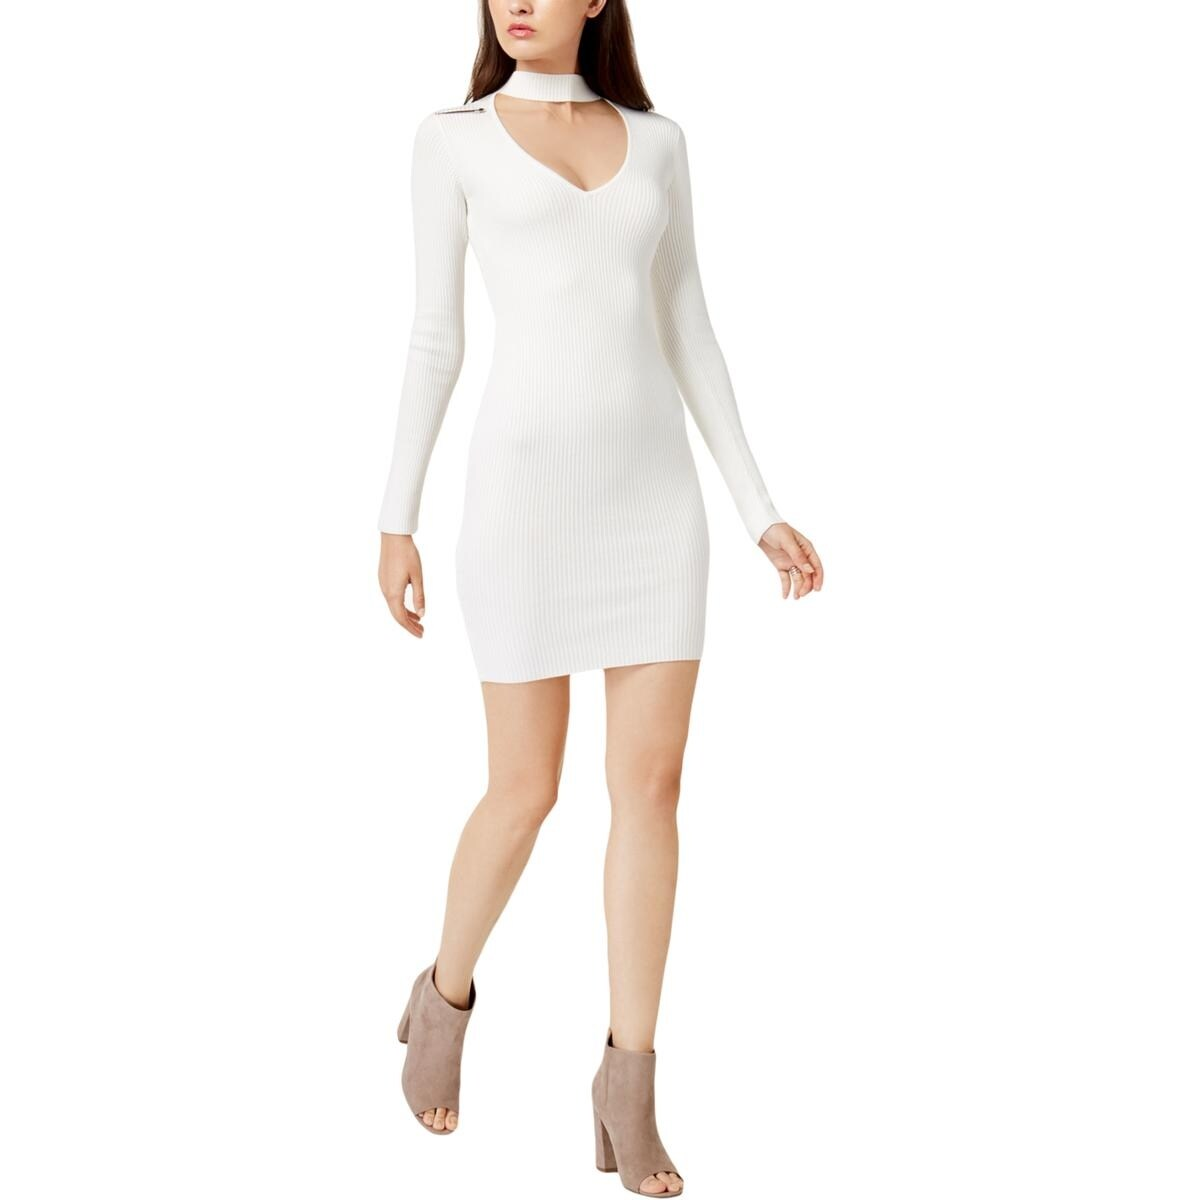 3f09ccd56ea Shop Guess Womens Teagan Sweaterdress Above Knee Cut-Out - Free Shipping On  Orders Over  45 - Overstock.com - 23139467